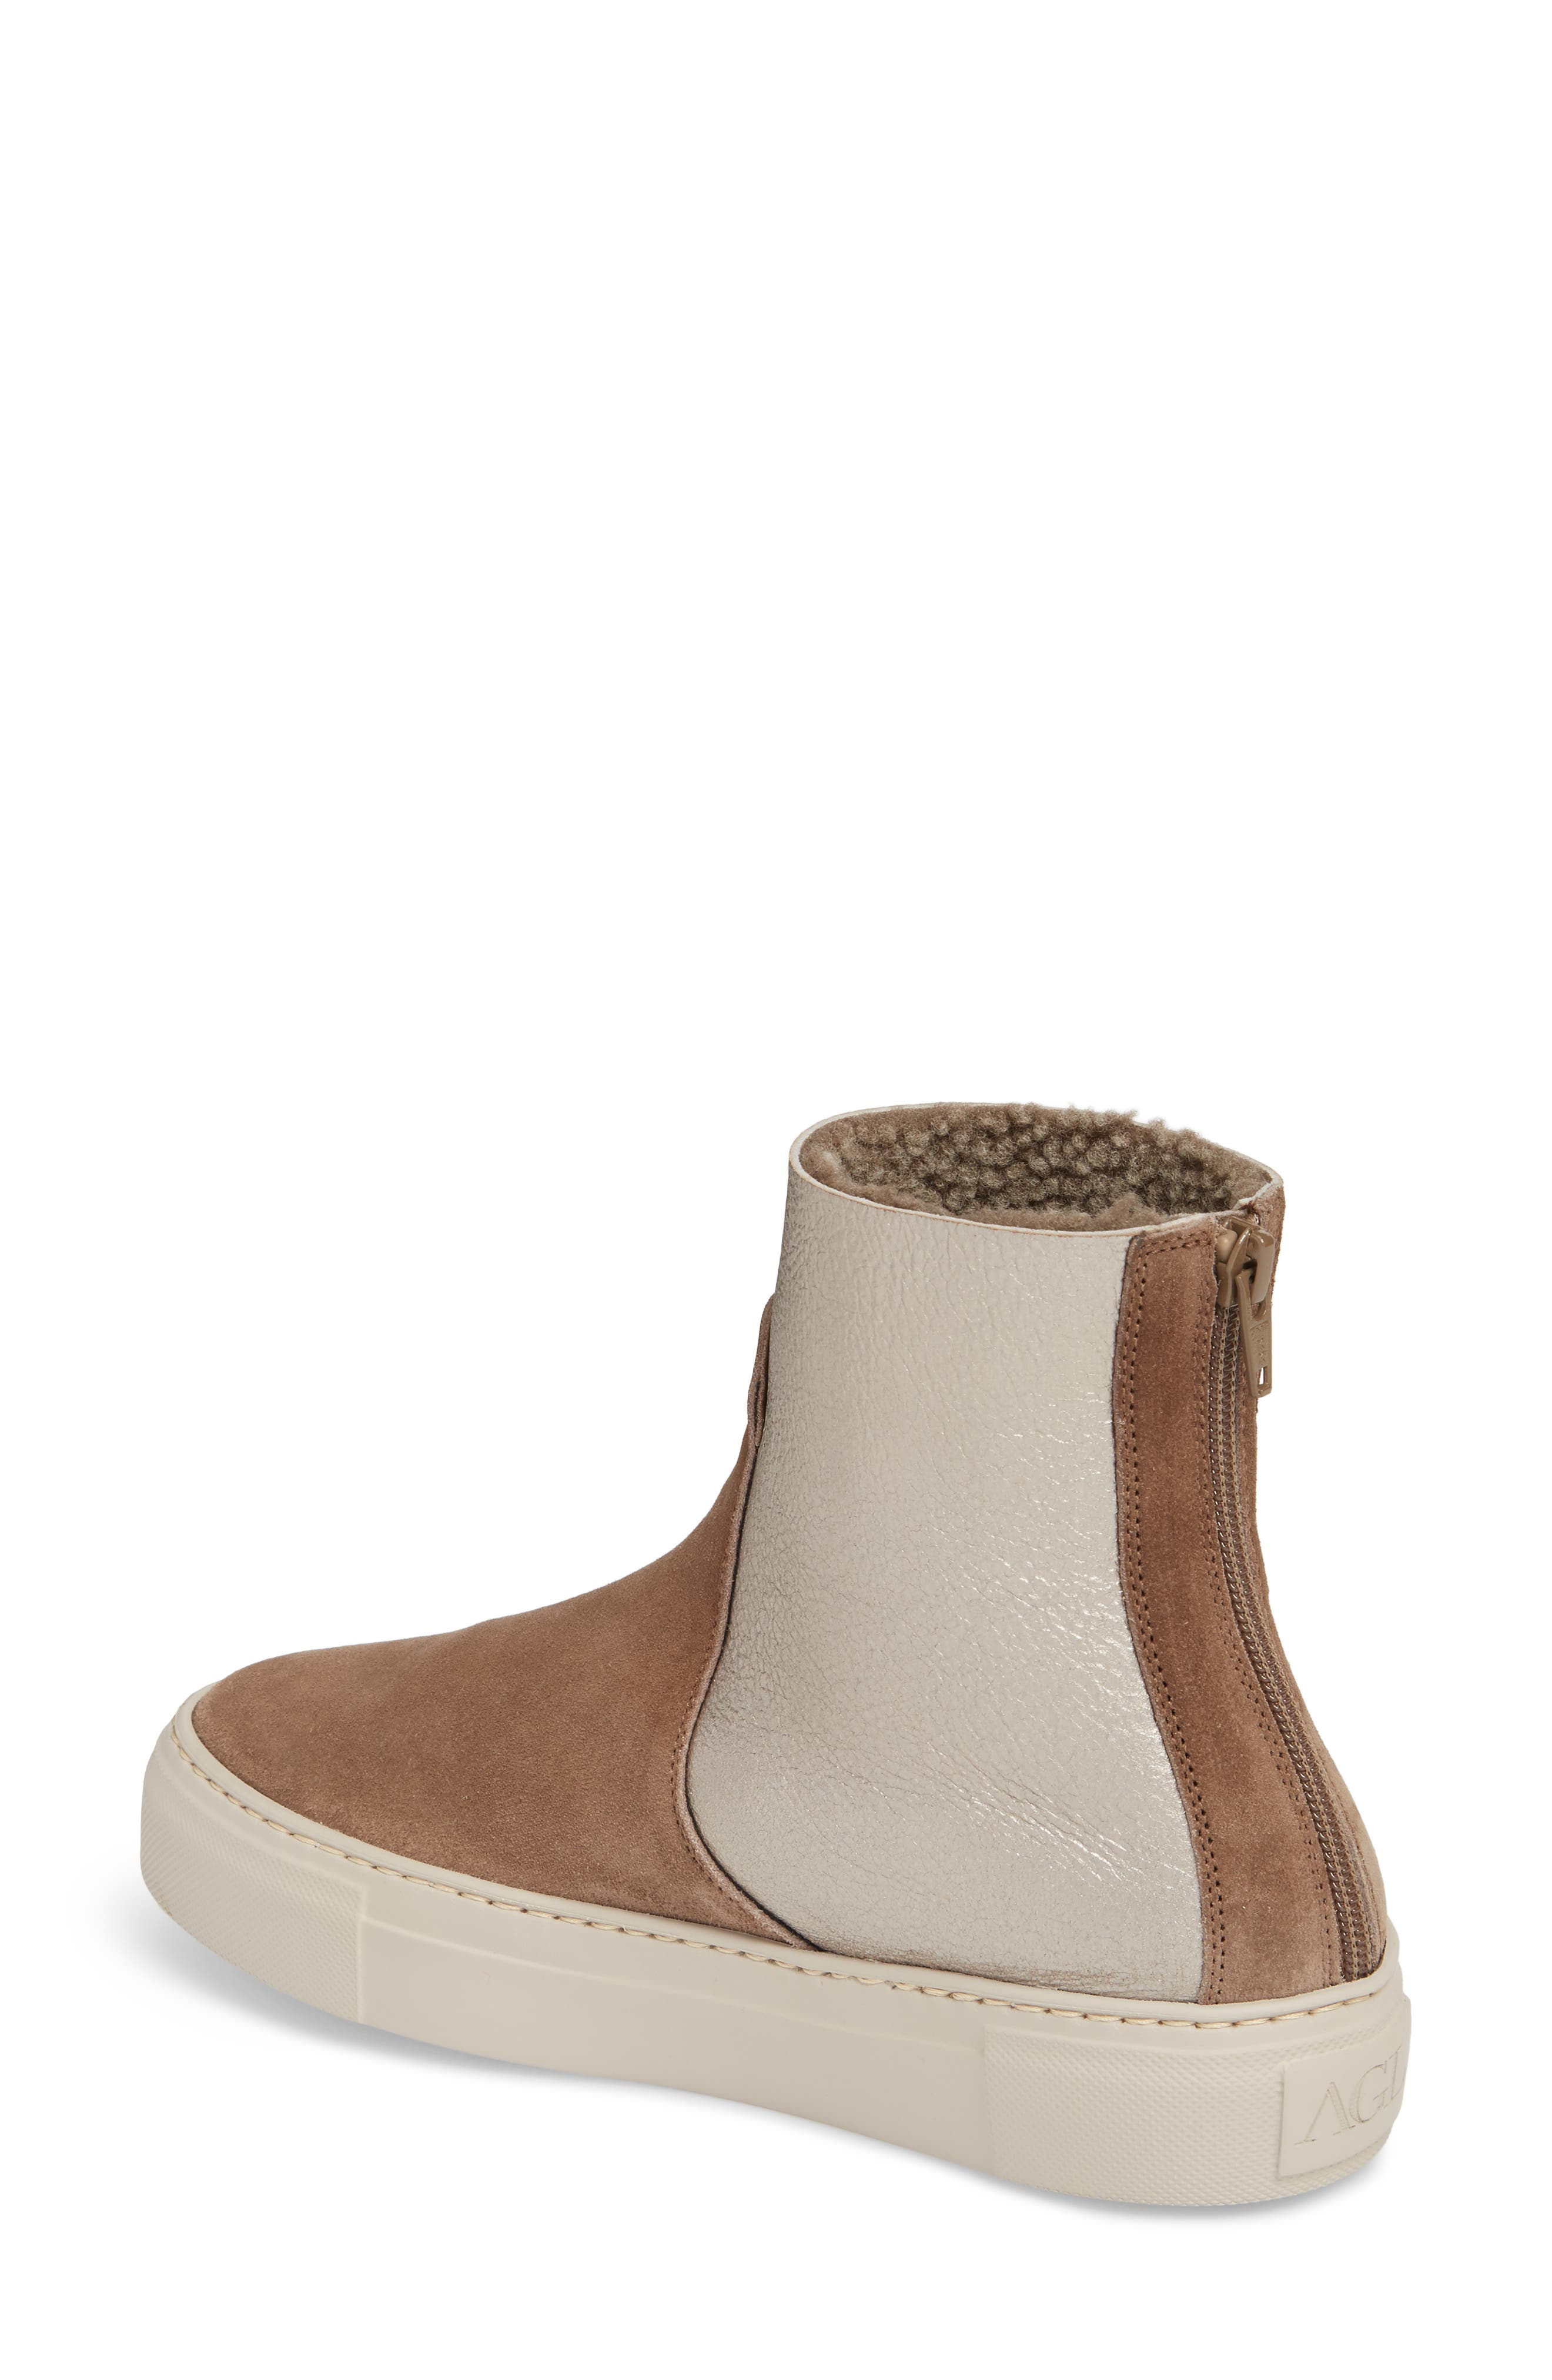 Sport Genuine Shearling Lined Bootie,                             Alternate thumbnail 2, color,                             255